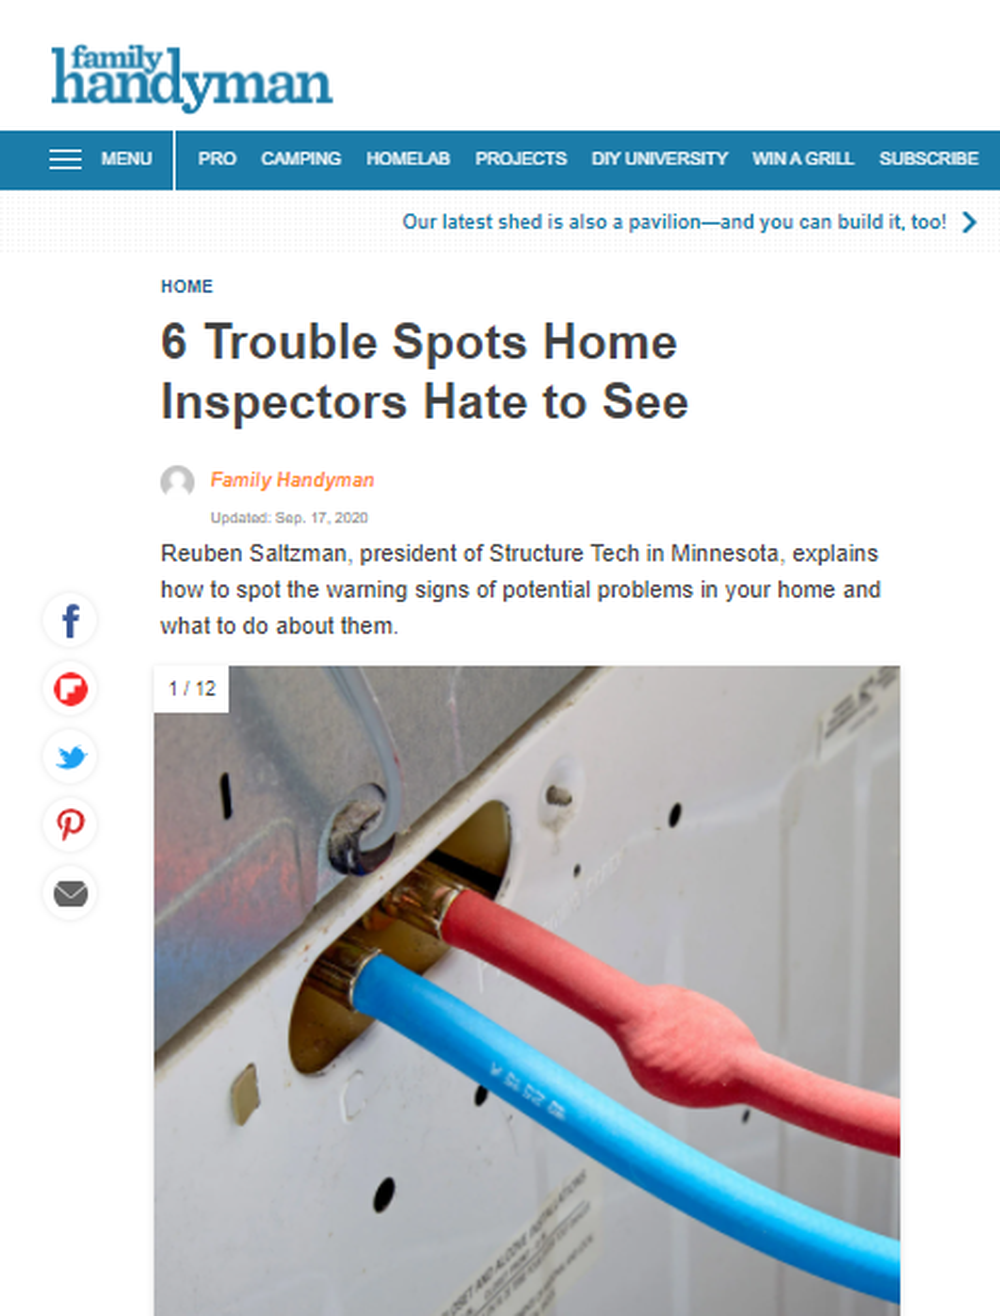 6-Trouble-Spots-Home-Inspectors-Hate-to-See-And-How-to-Fix-Them-.png